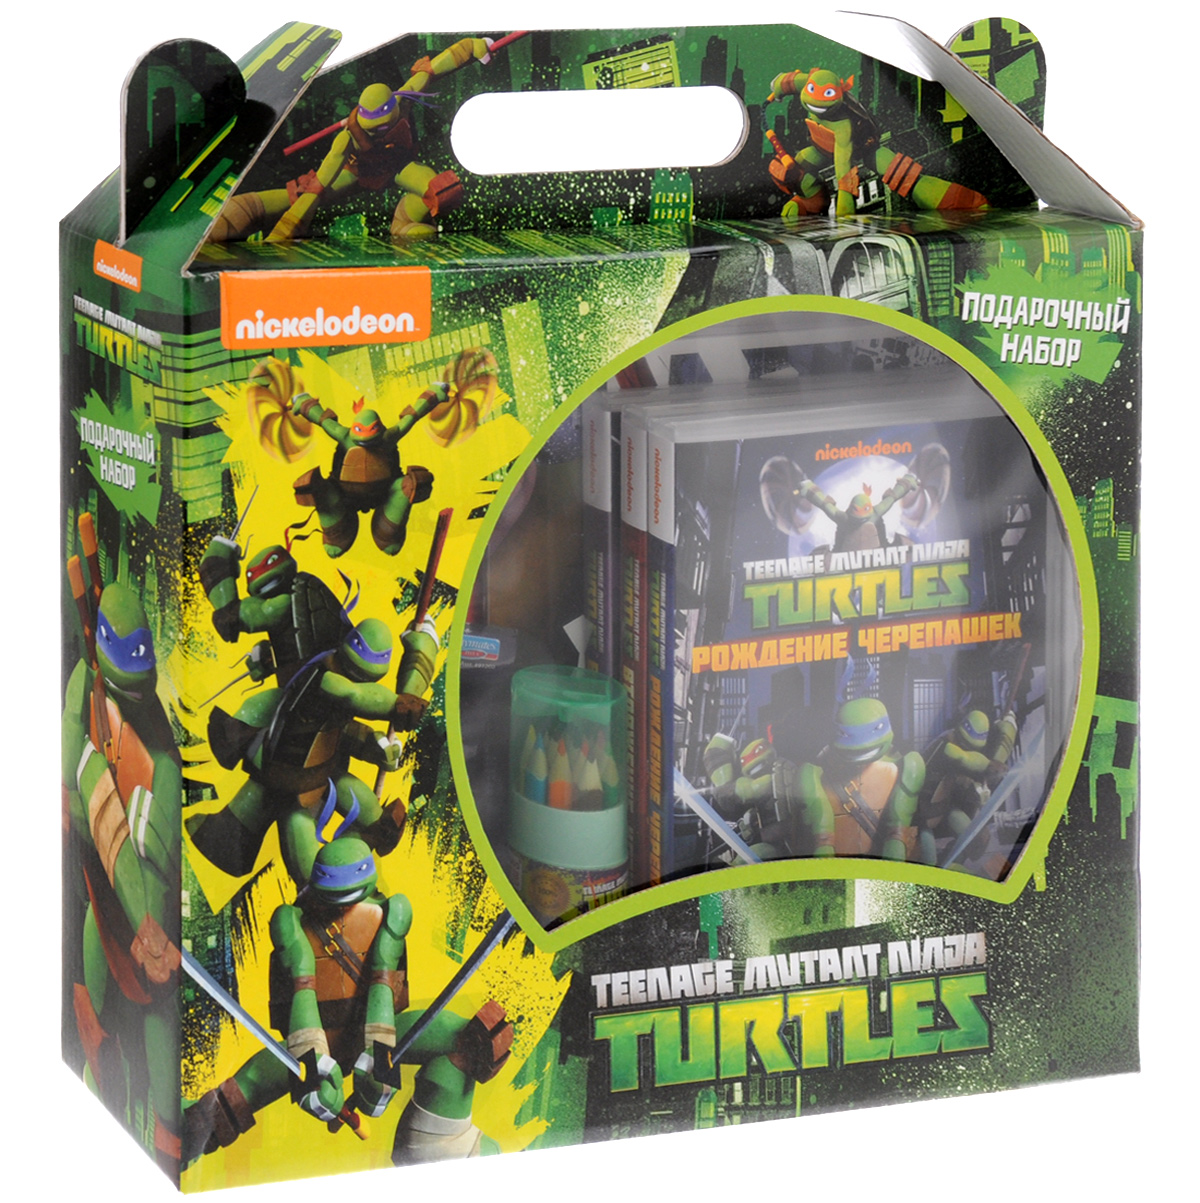 Teenage Mutant Ninja Turtles: Подарочный набор (3 DVD + сувениры) 2016 new bela 10261 tmnt teenage mutant ninja turtles karai bike escape building set building blocks bricks compatible 79118